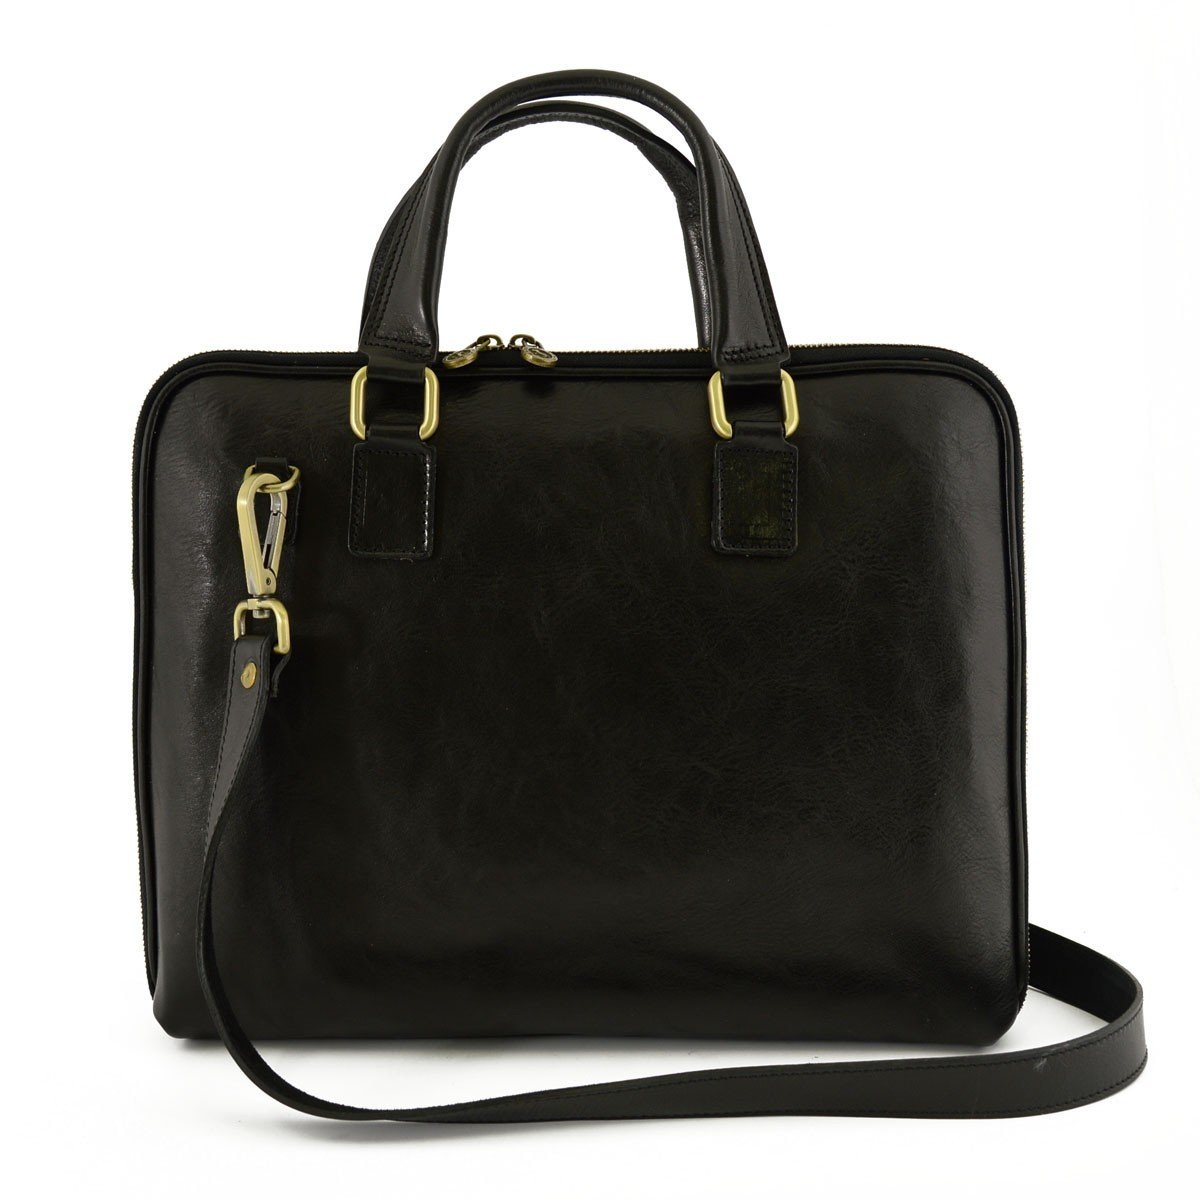 Made In Italy Genuine Leather Briefcase With Zip Closure And Side Bellows Color Black - Business Bag   B01BOGNMZI